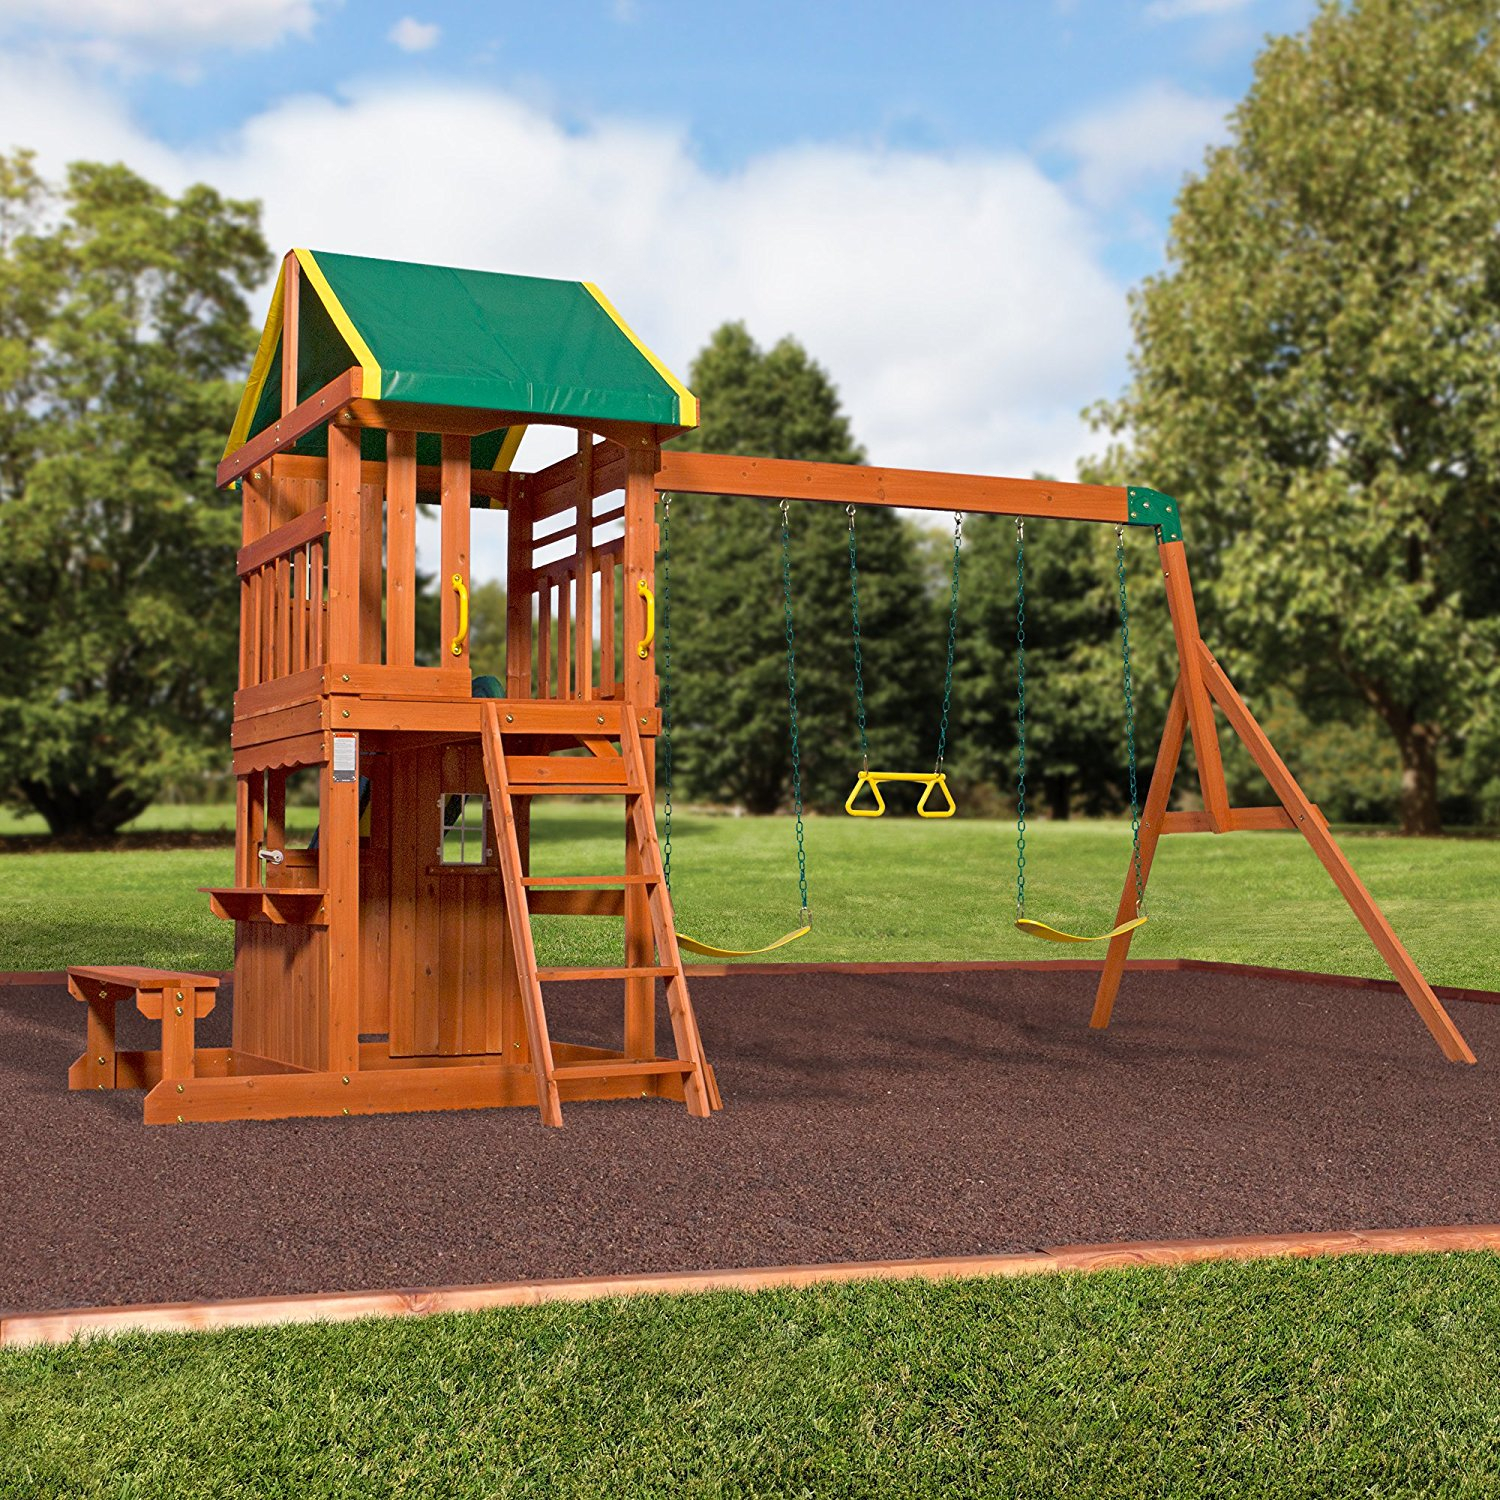 34 Amazing Backyard Playground Ideas And Photos For The Kids Of Course with regard to 10 Smart Initiatives of How to Build Cheap Backyard Playground Ideas